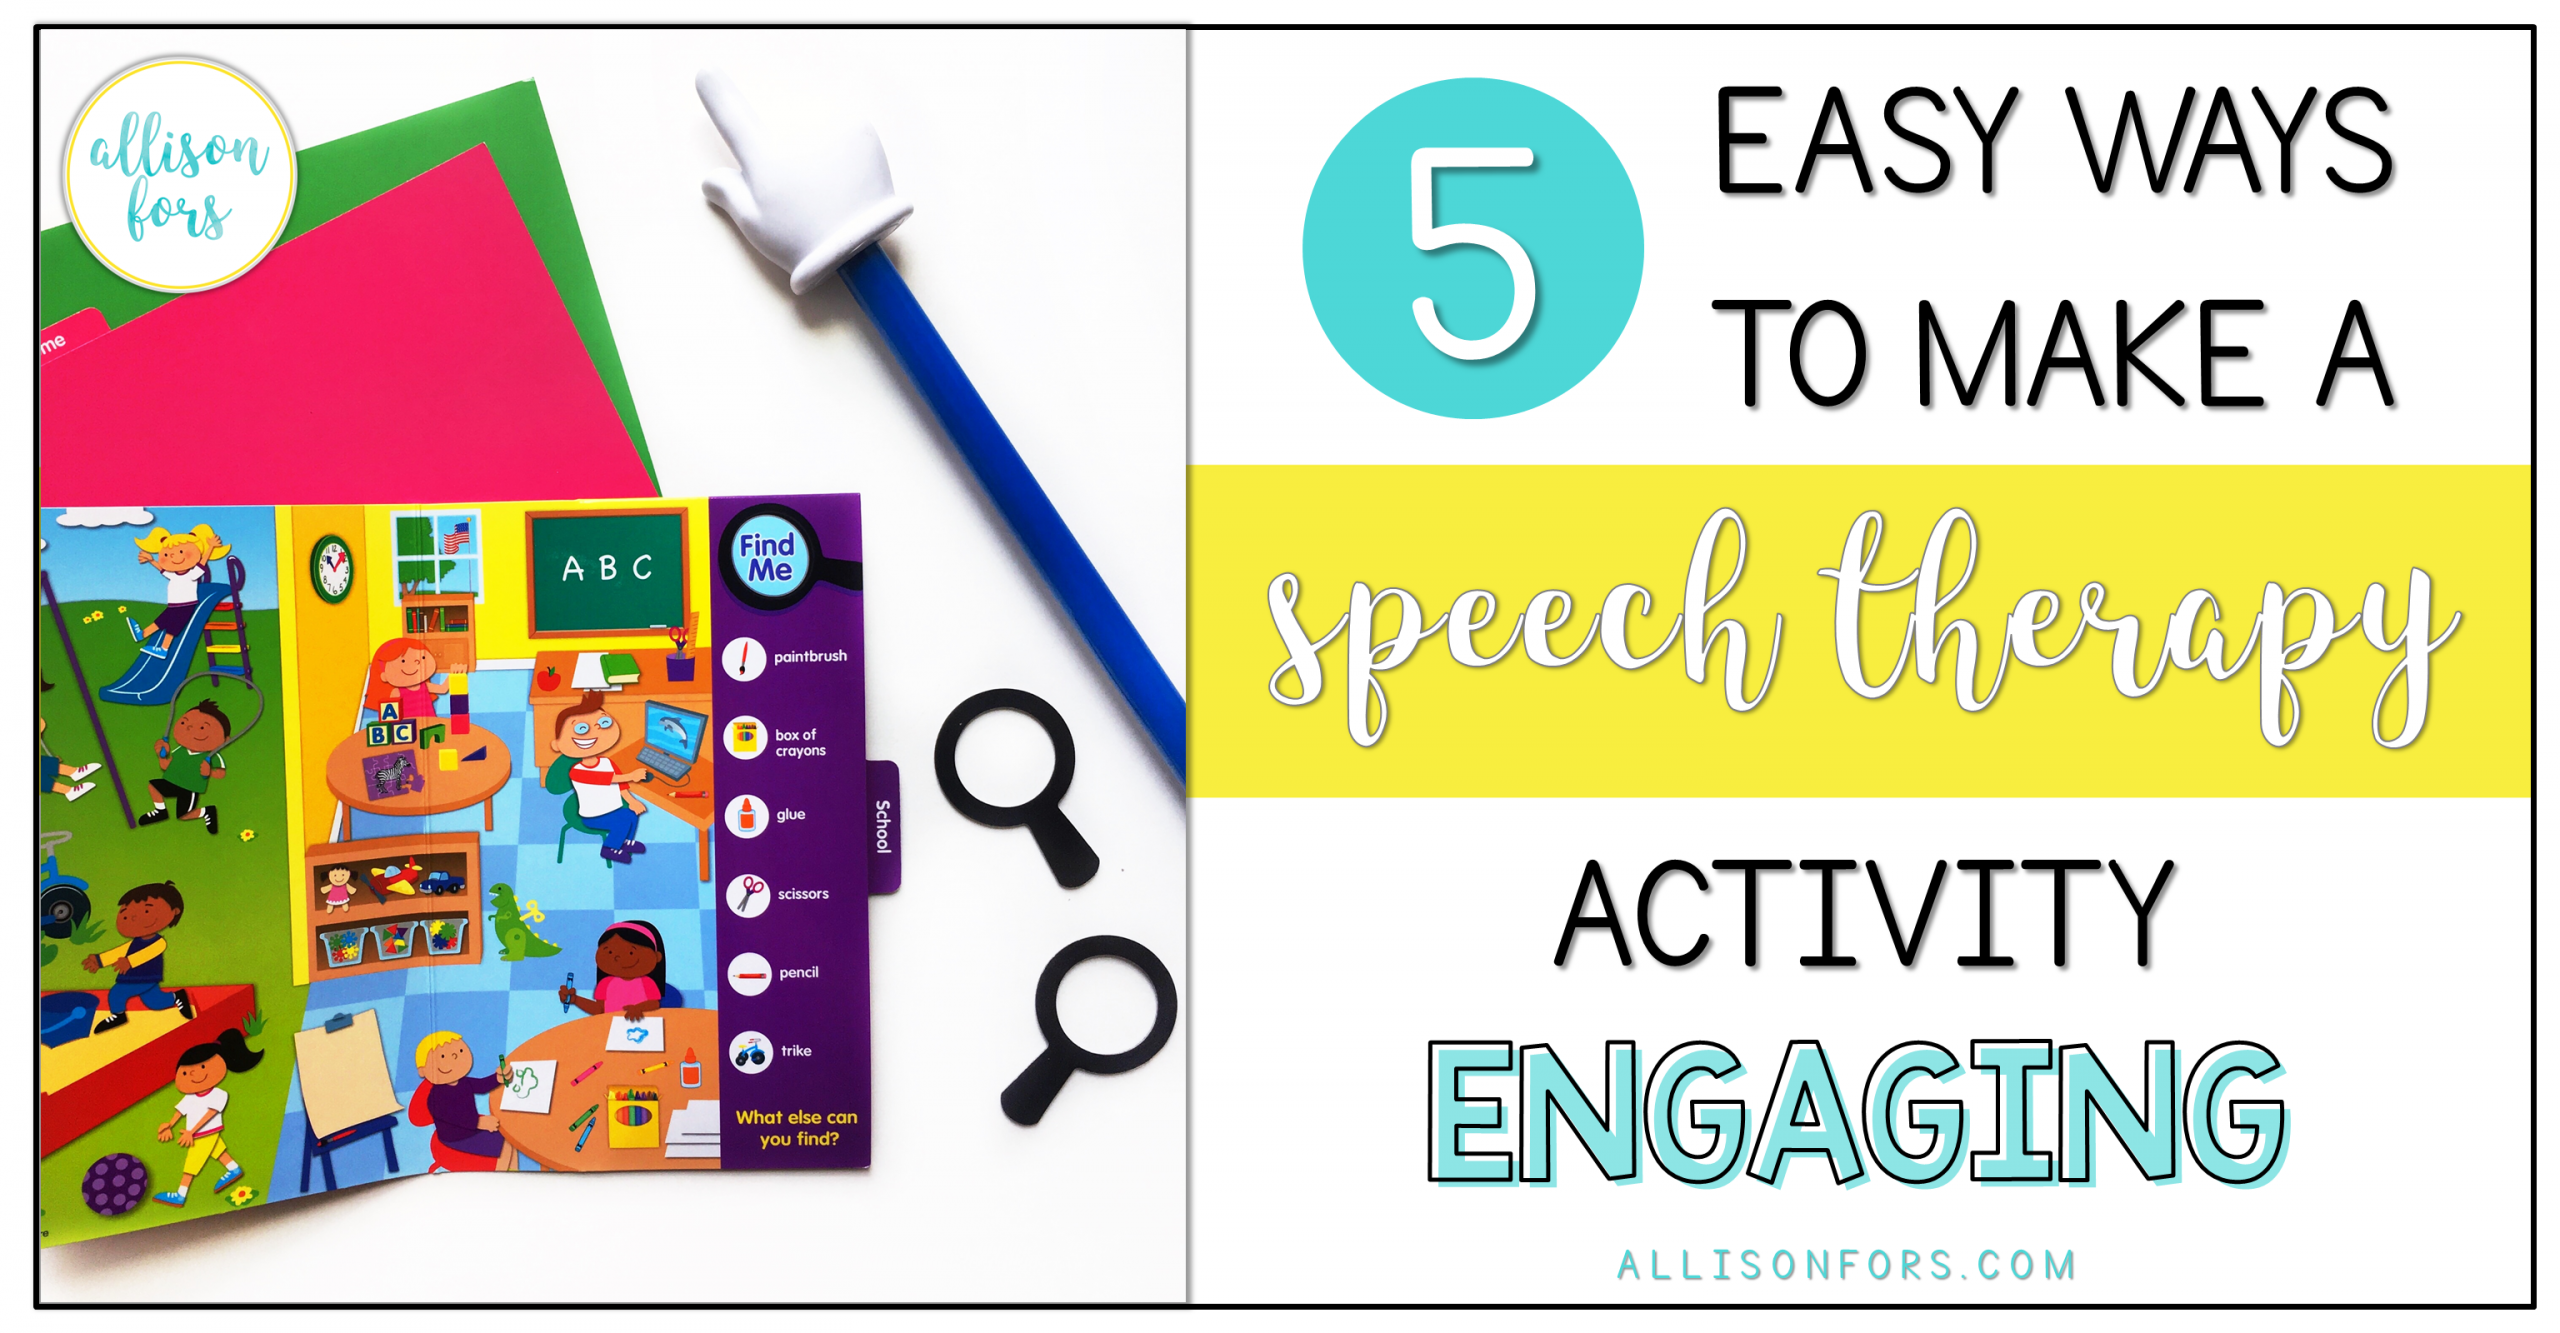 5 Easy Ways to Make an Activity Engaging